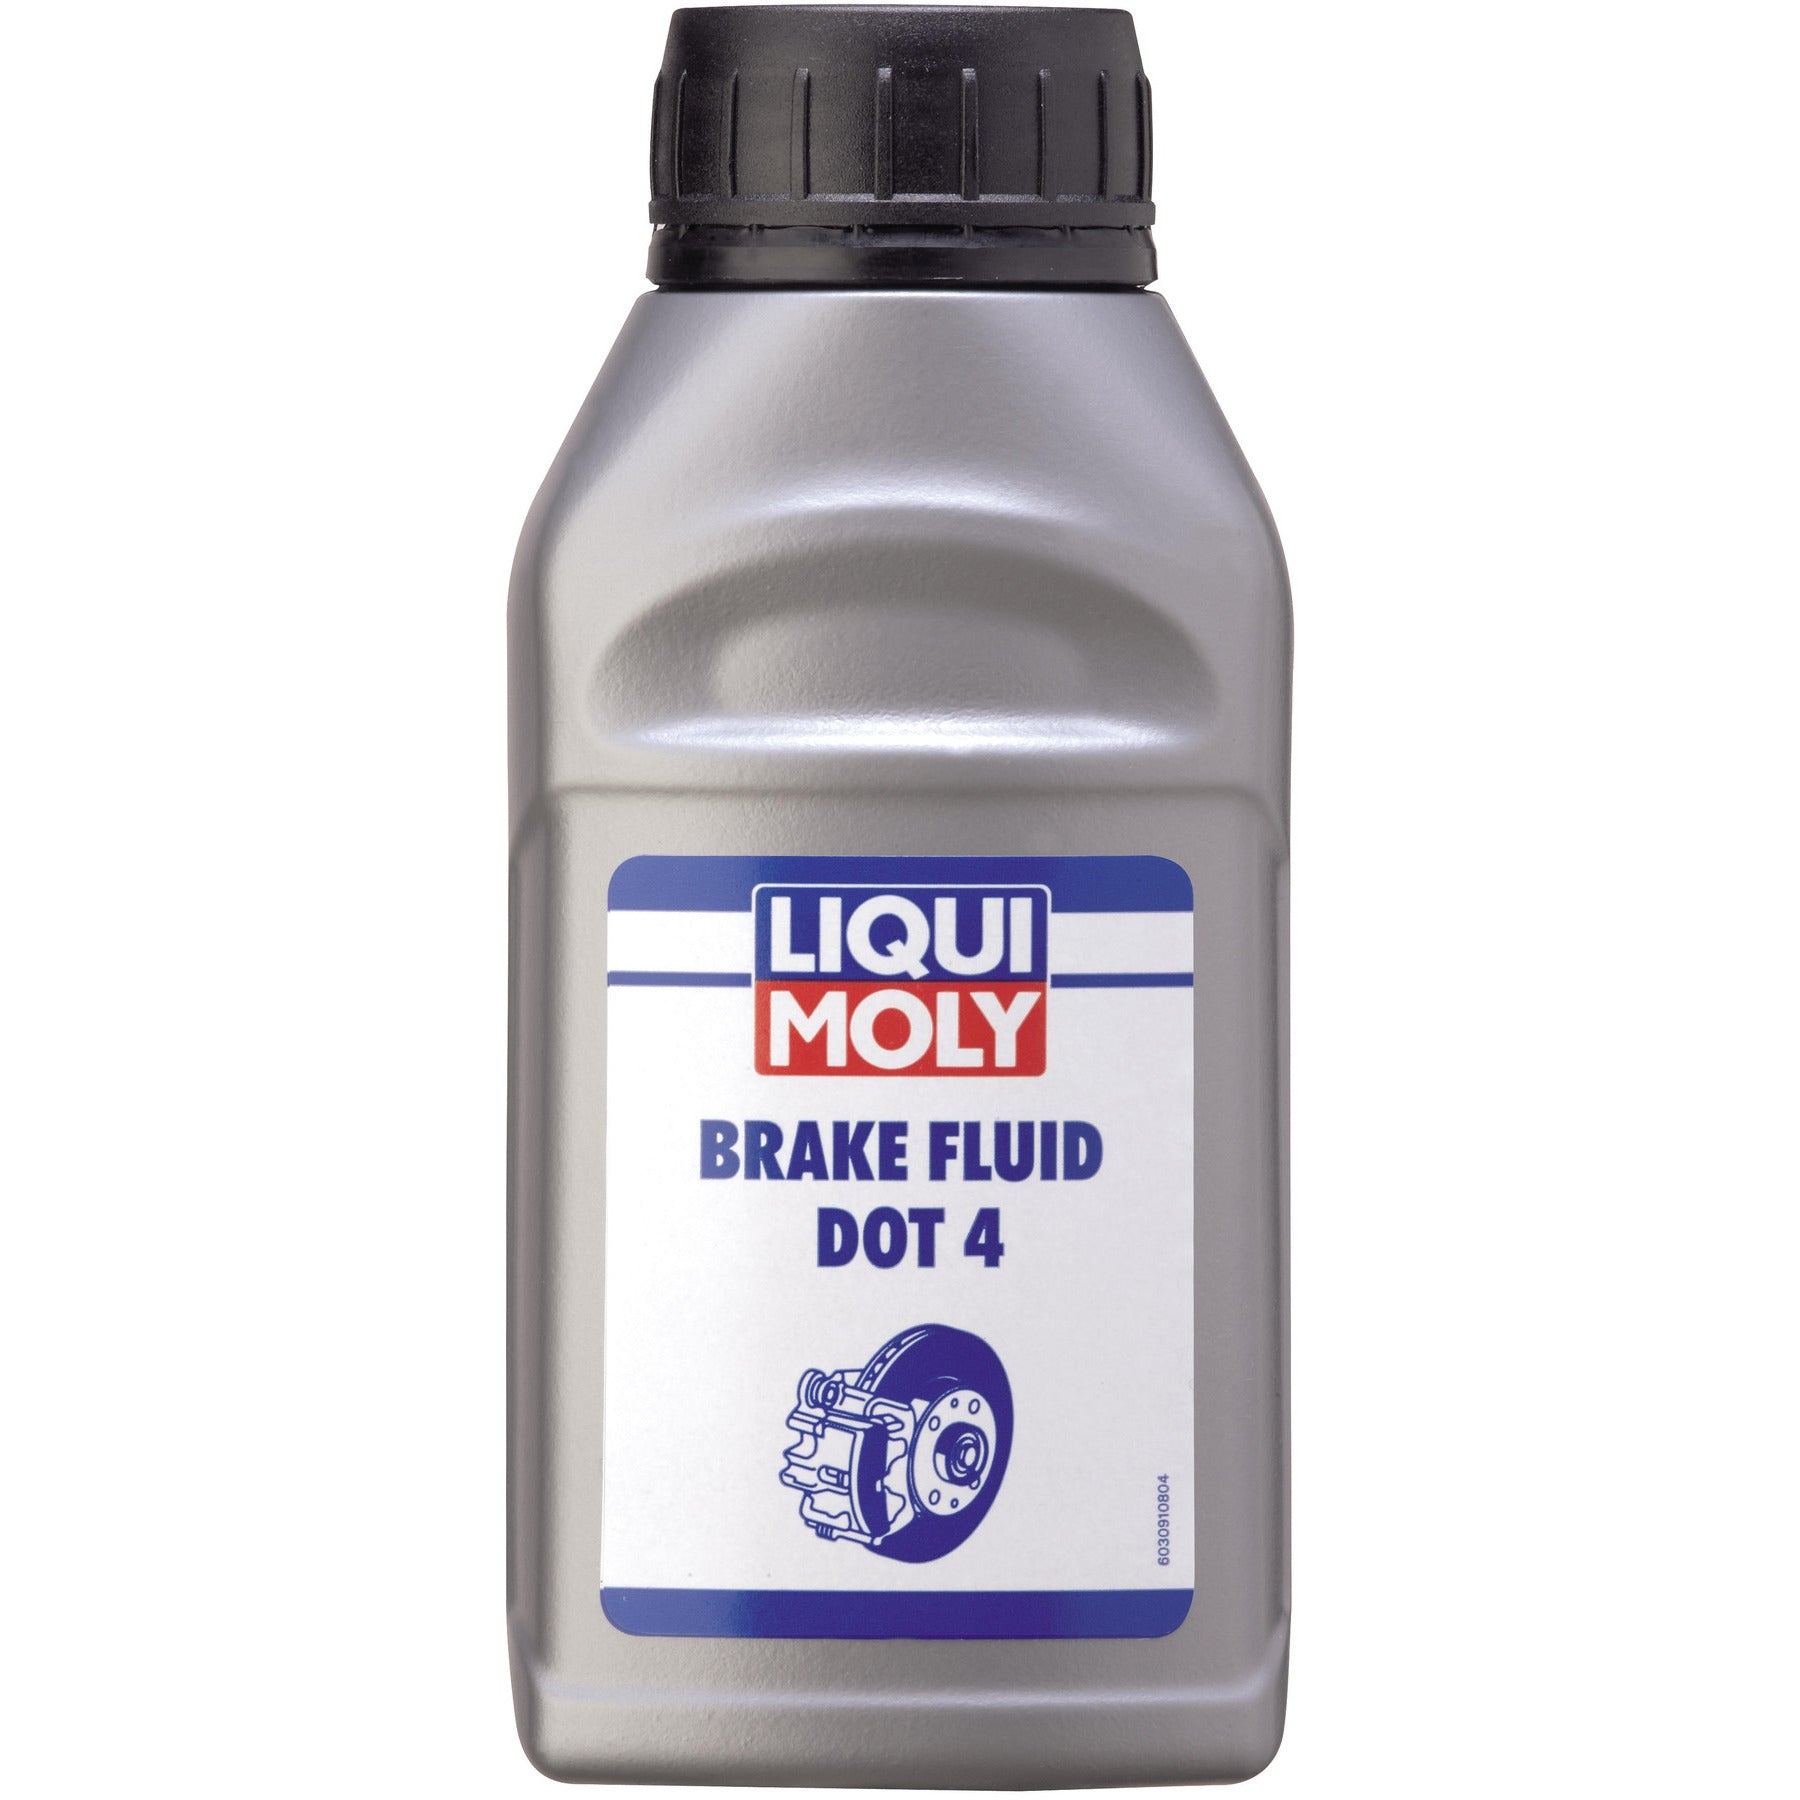 Liqui Moly Brake fluid DOT 4 (Synthetic) 250ml